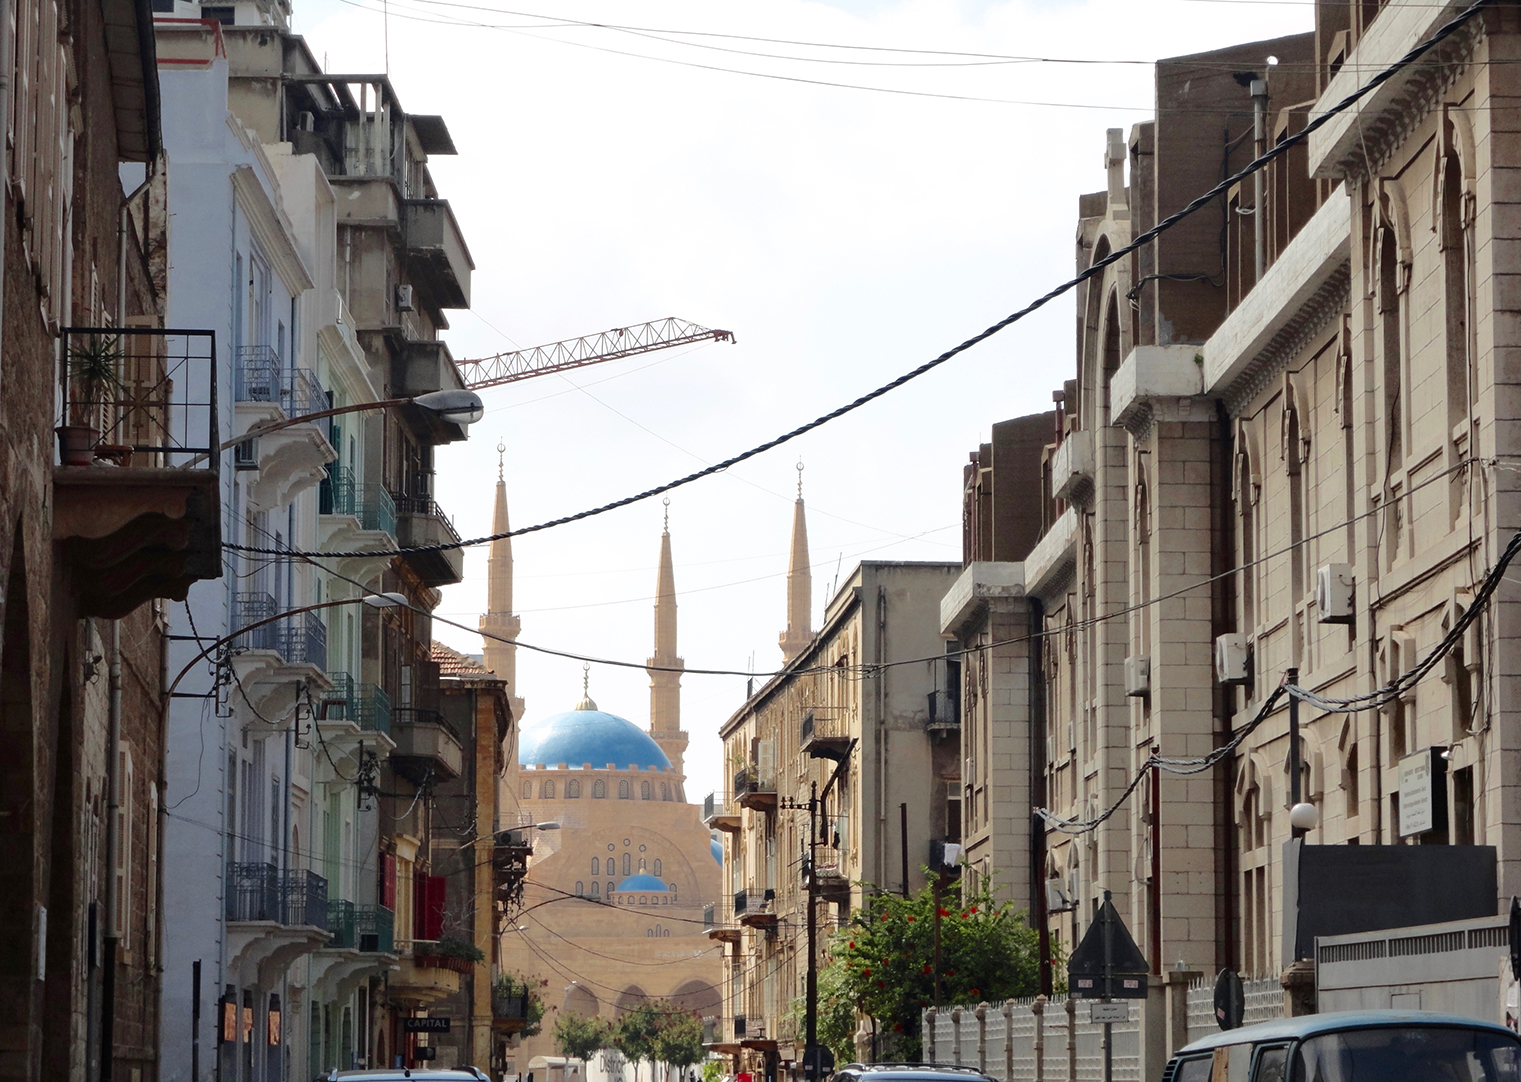 Downtown Beirut Lebanon with central mosque